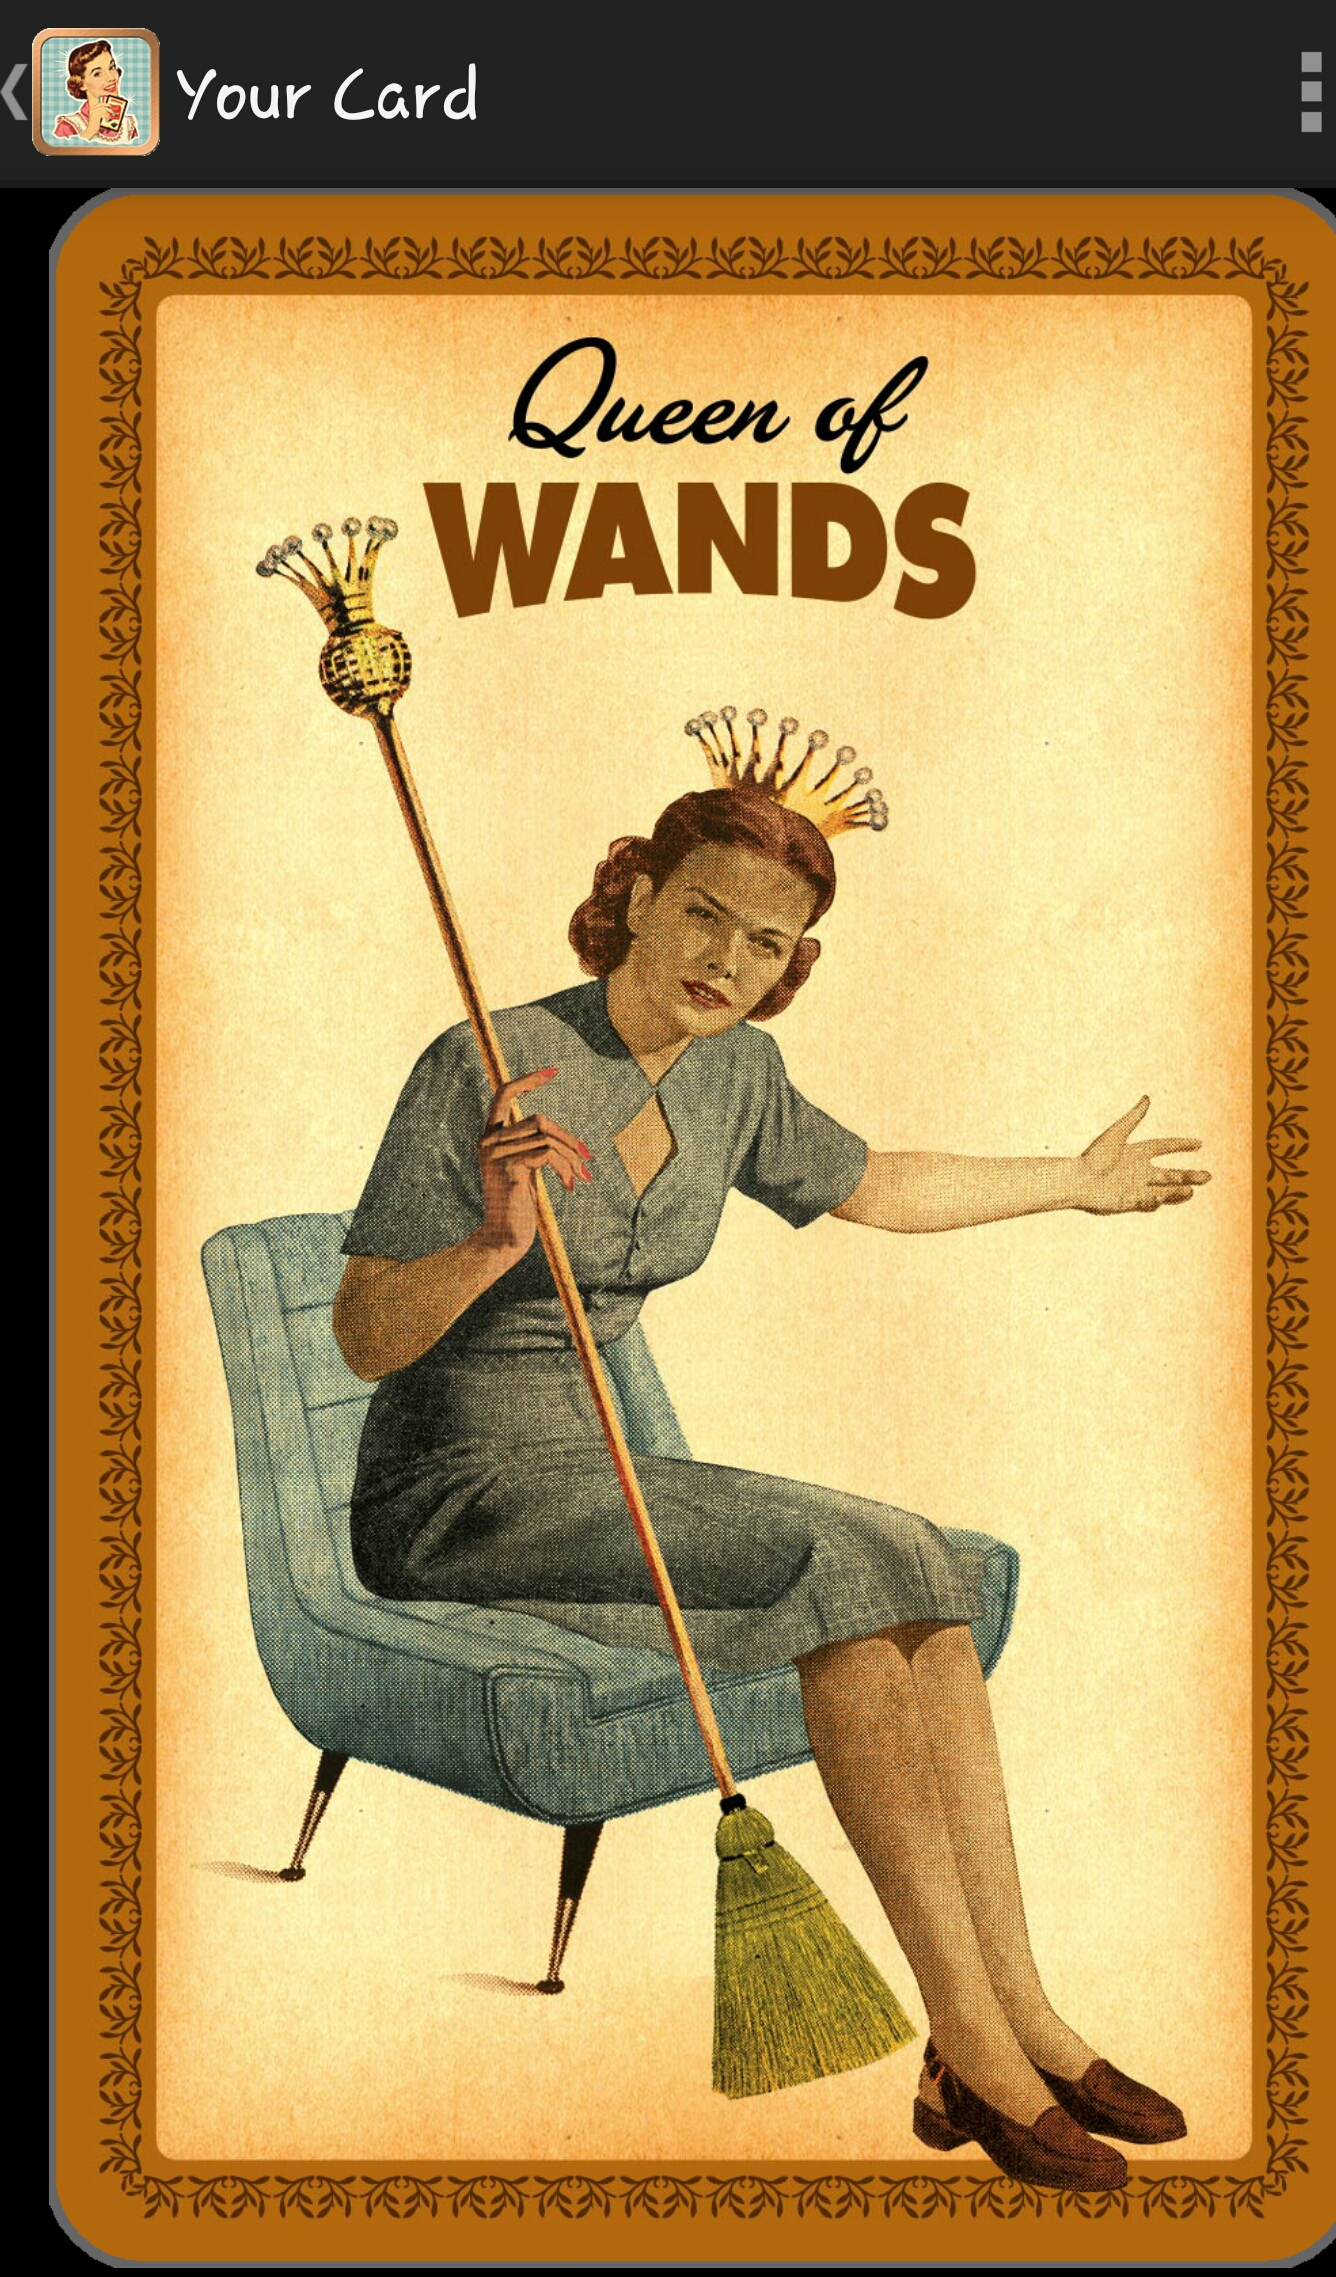 Queen of Wands, Housewives Tarot